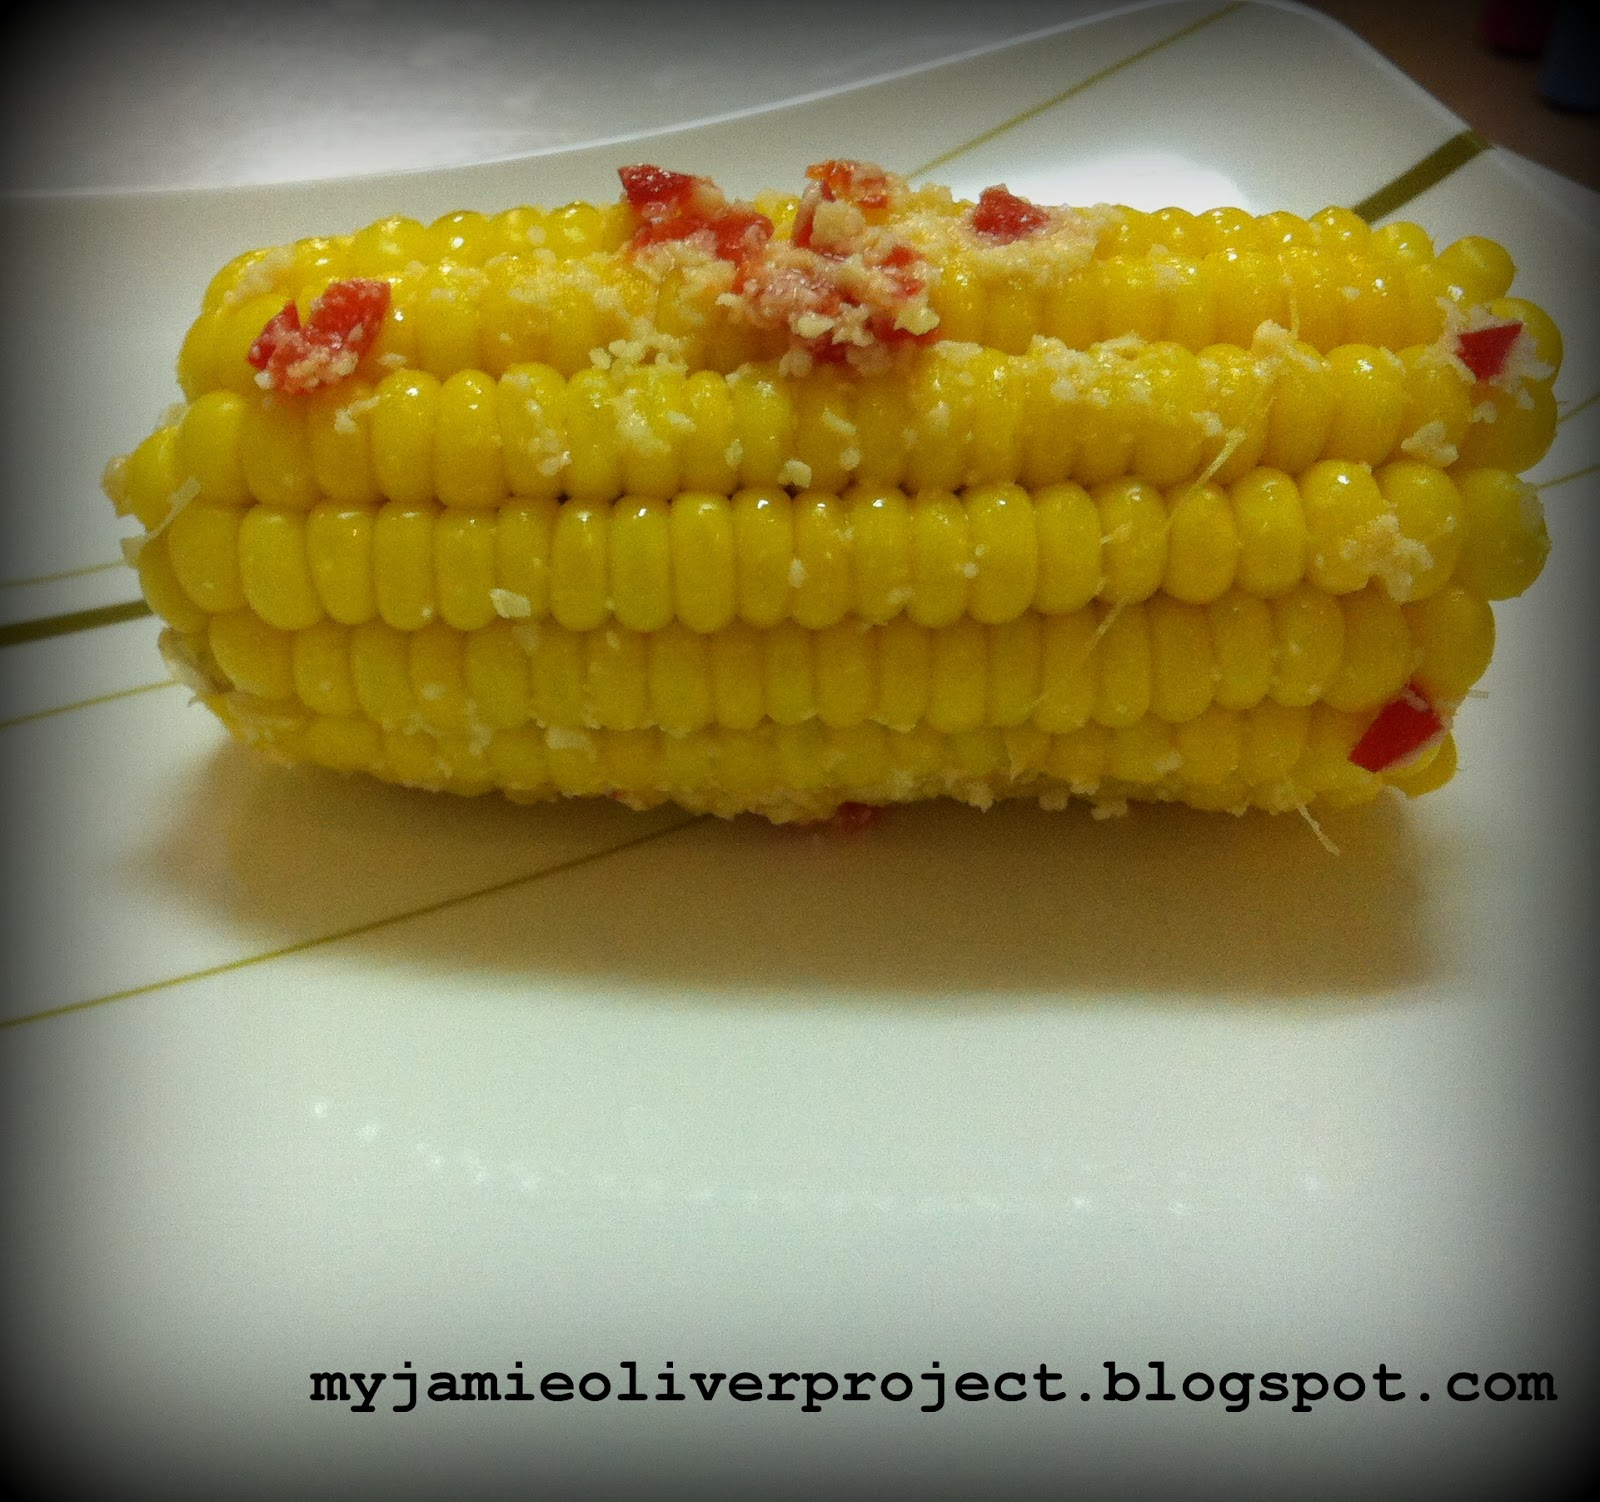 My attempt to cook 100 jamie olivers recipes attempt 15 overall cant go wrong with corn on cob ccuart Gallery